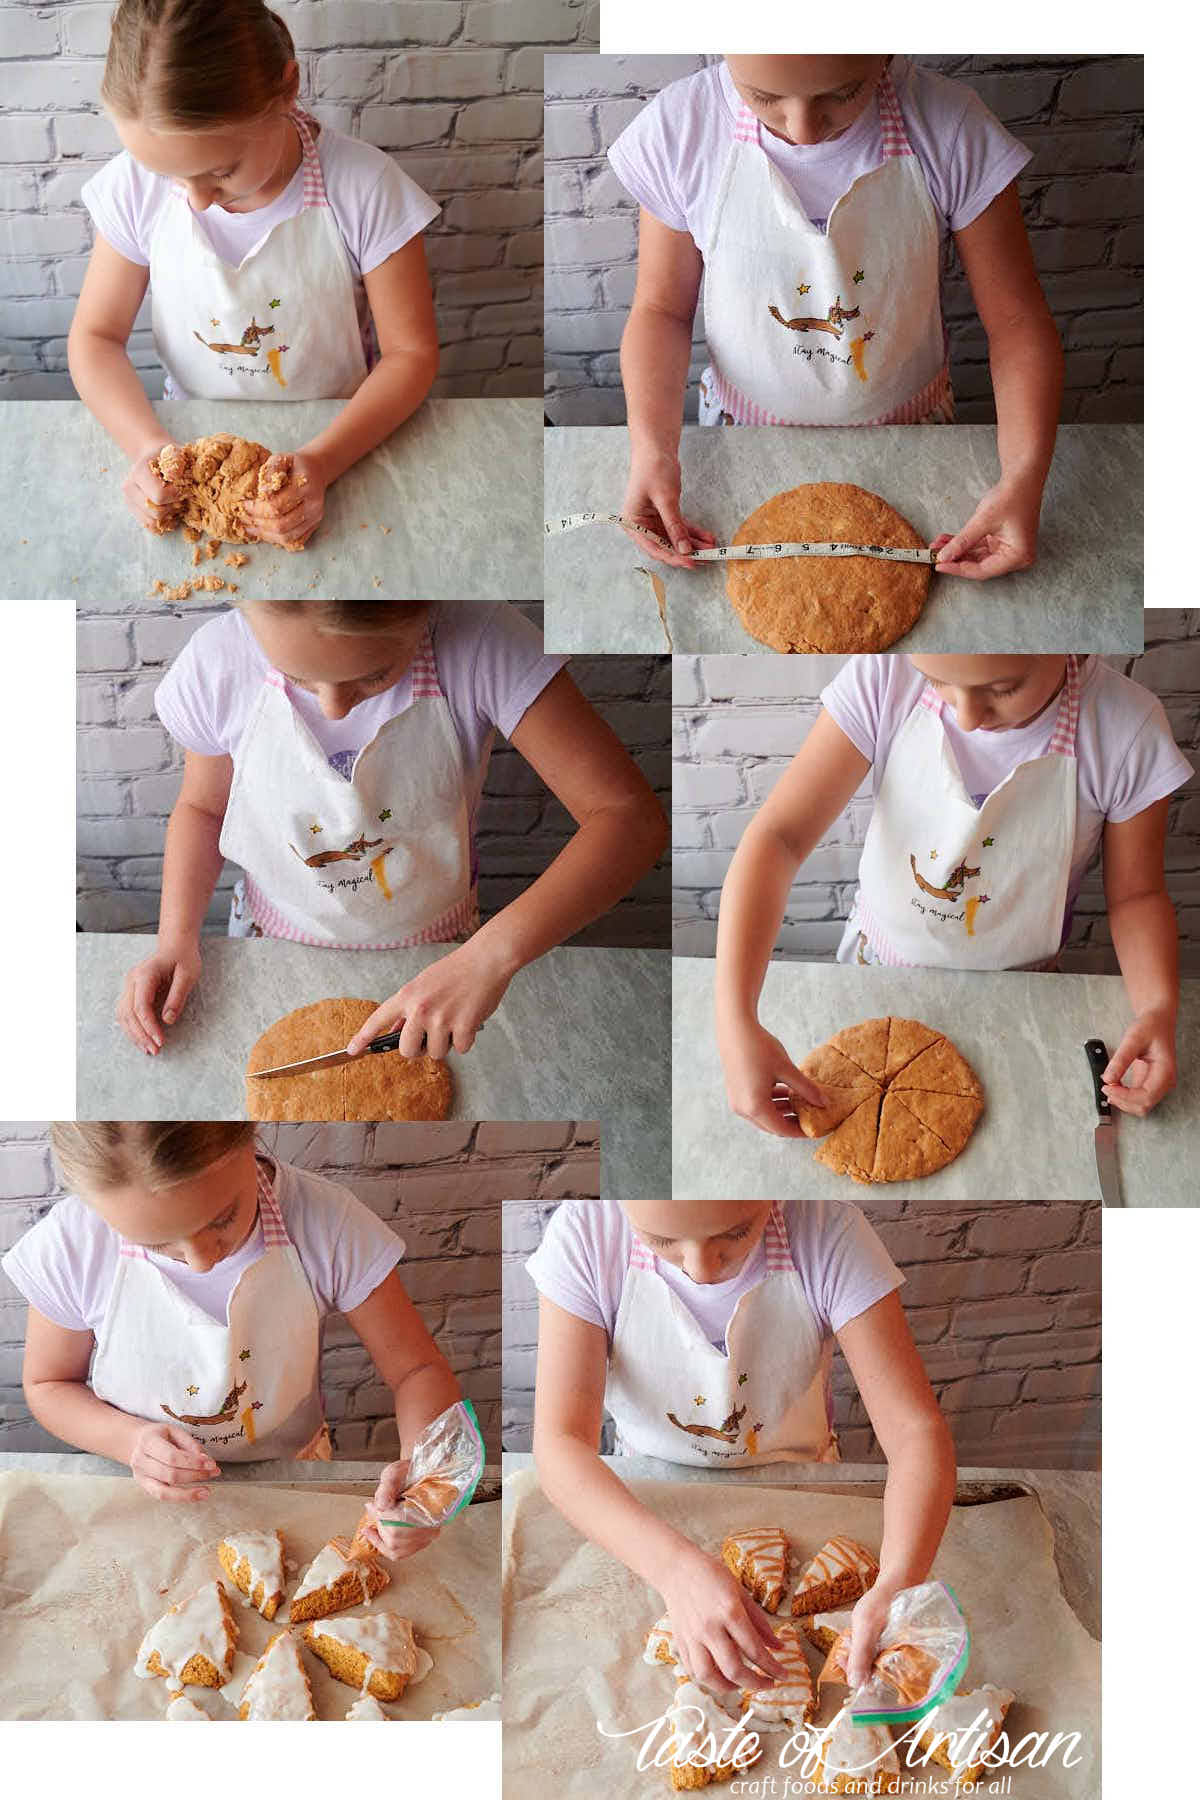 Making pumpkin scones, a collage of pictures.